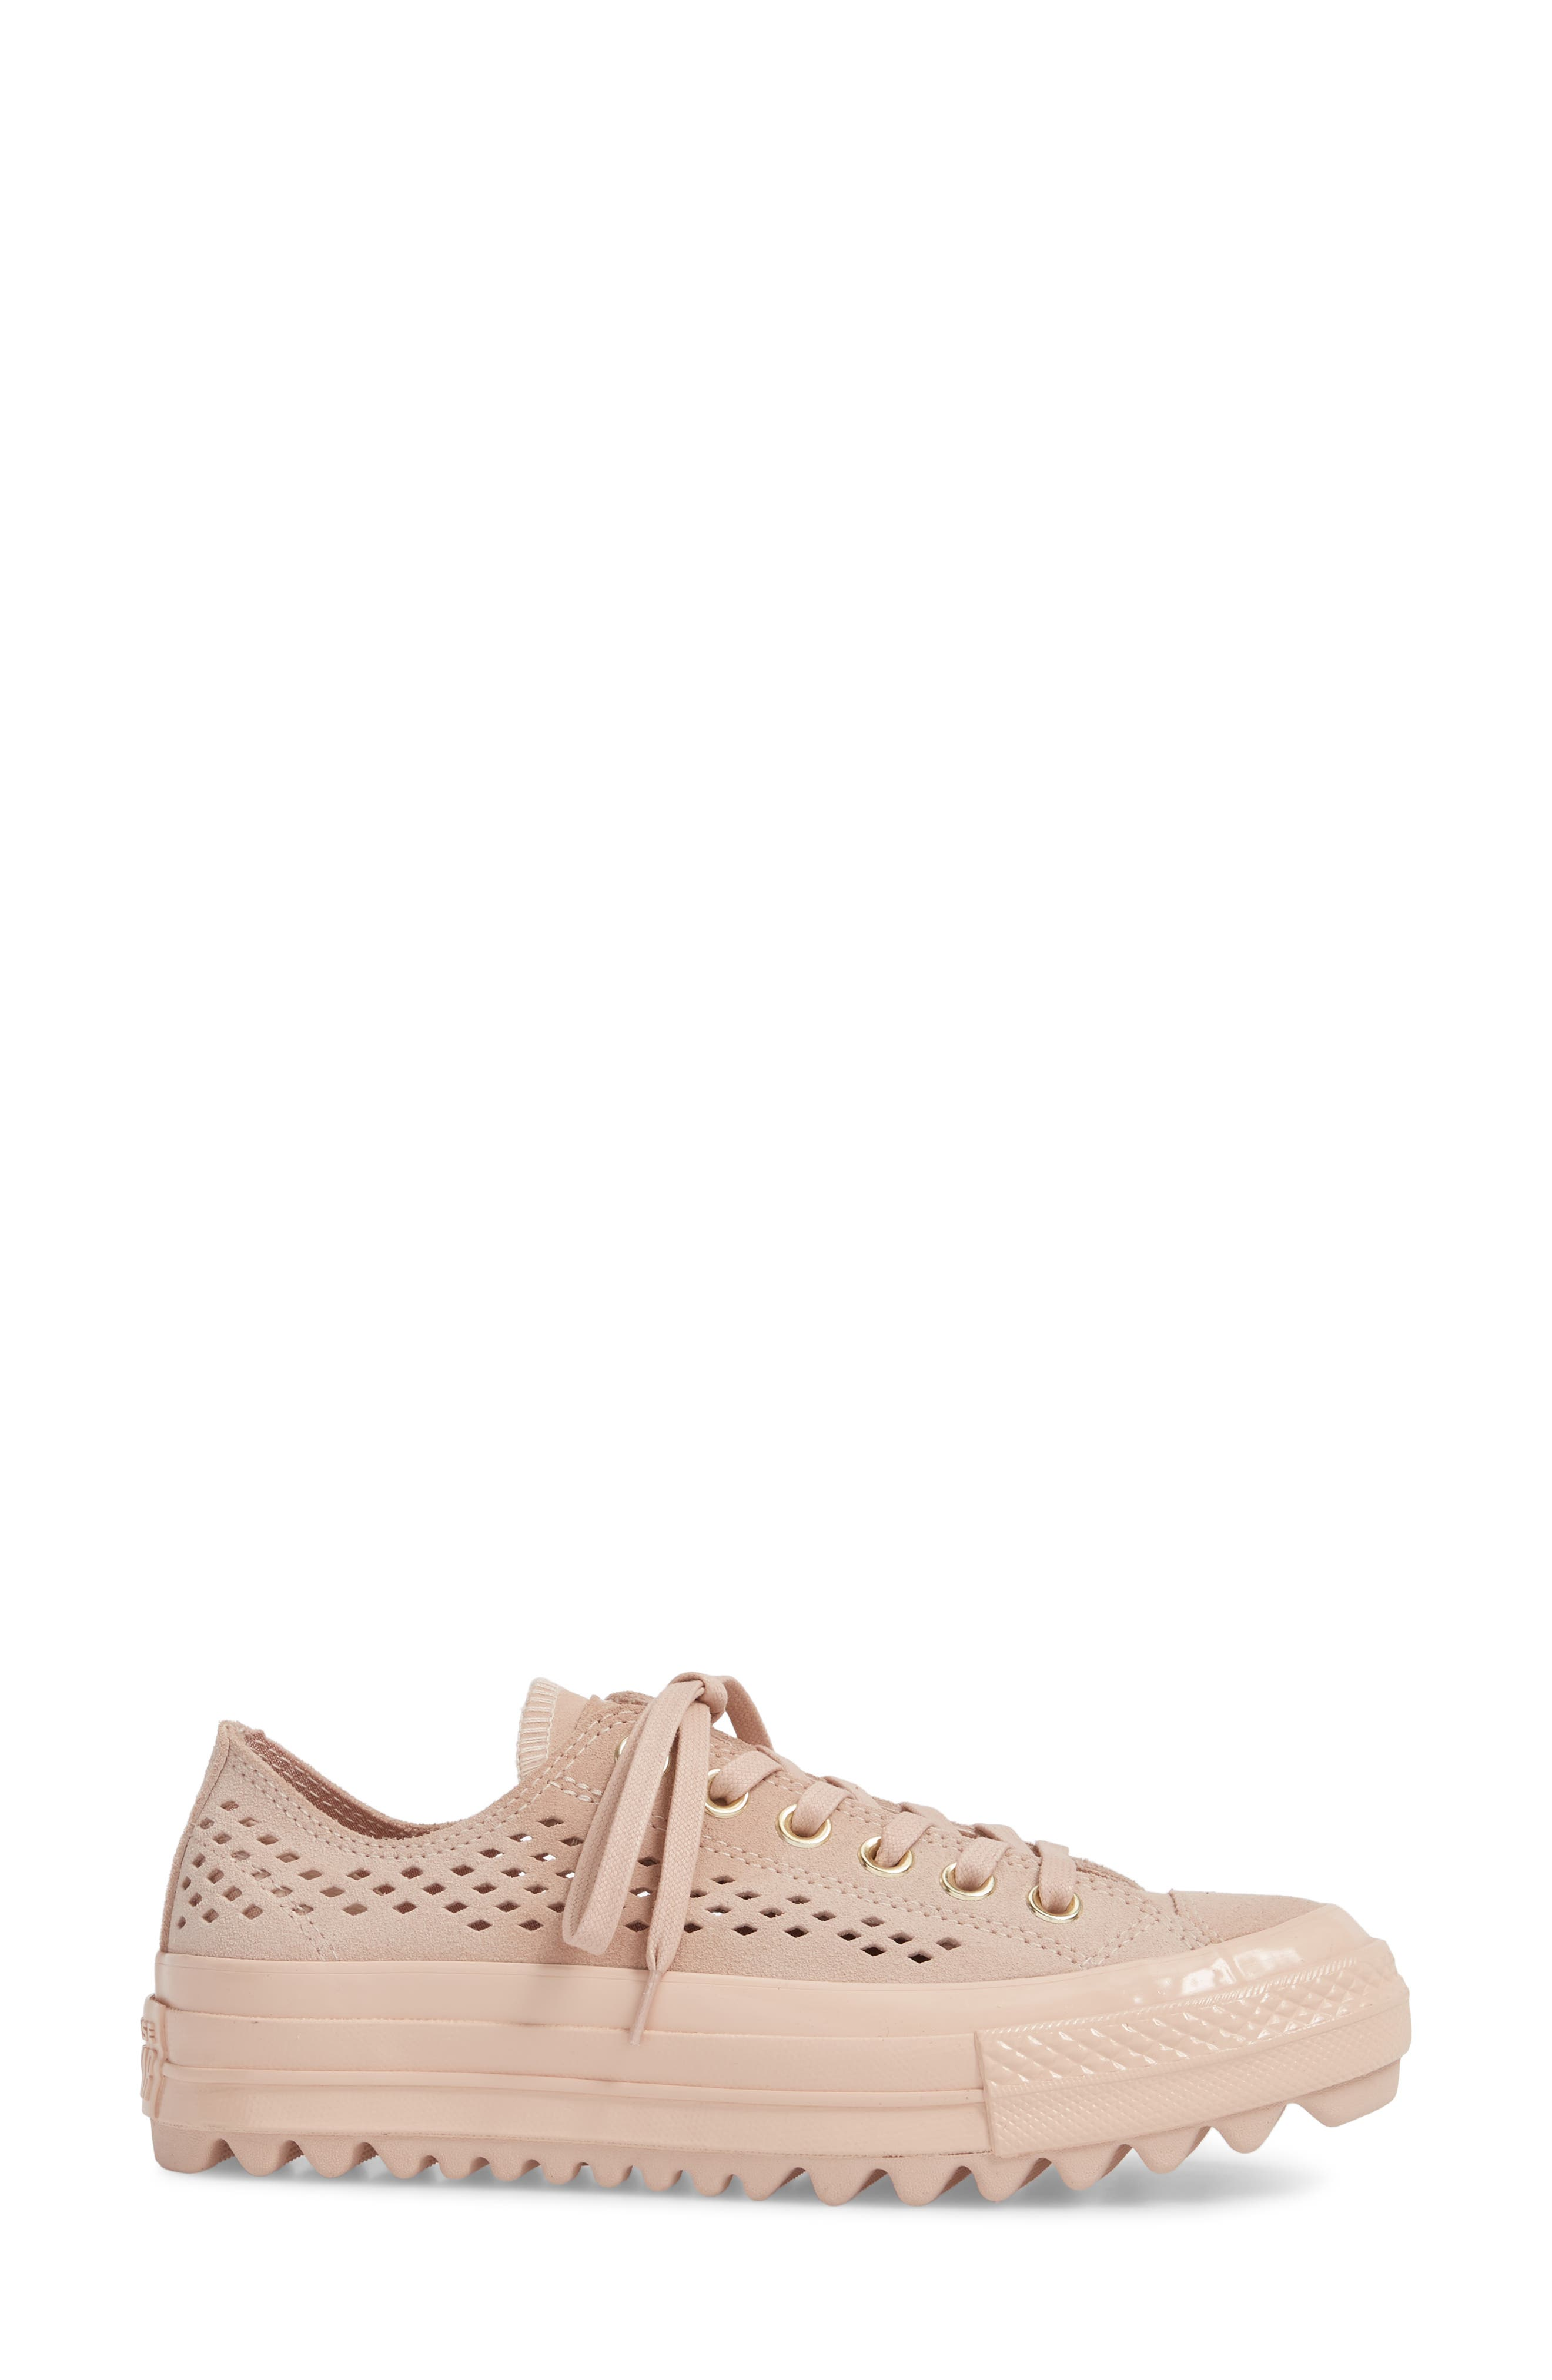 Chuck Taylor<sup>®</sup> All Star<sup>®</sup> Lift Ripple Sneaker,                             Alternate thumbnail 3, color,                             Particle Beige